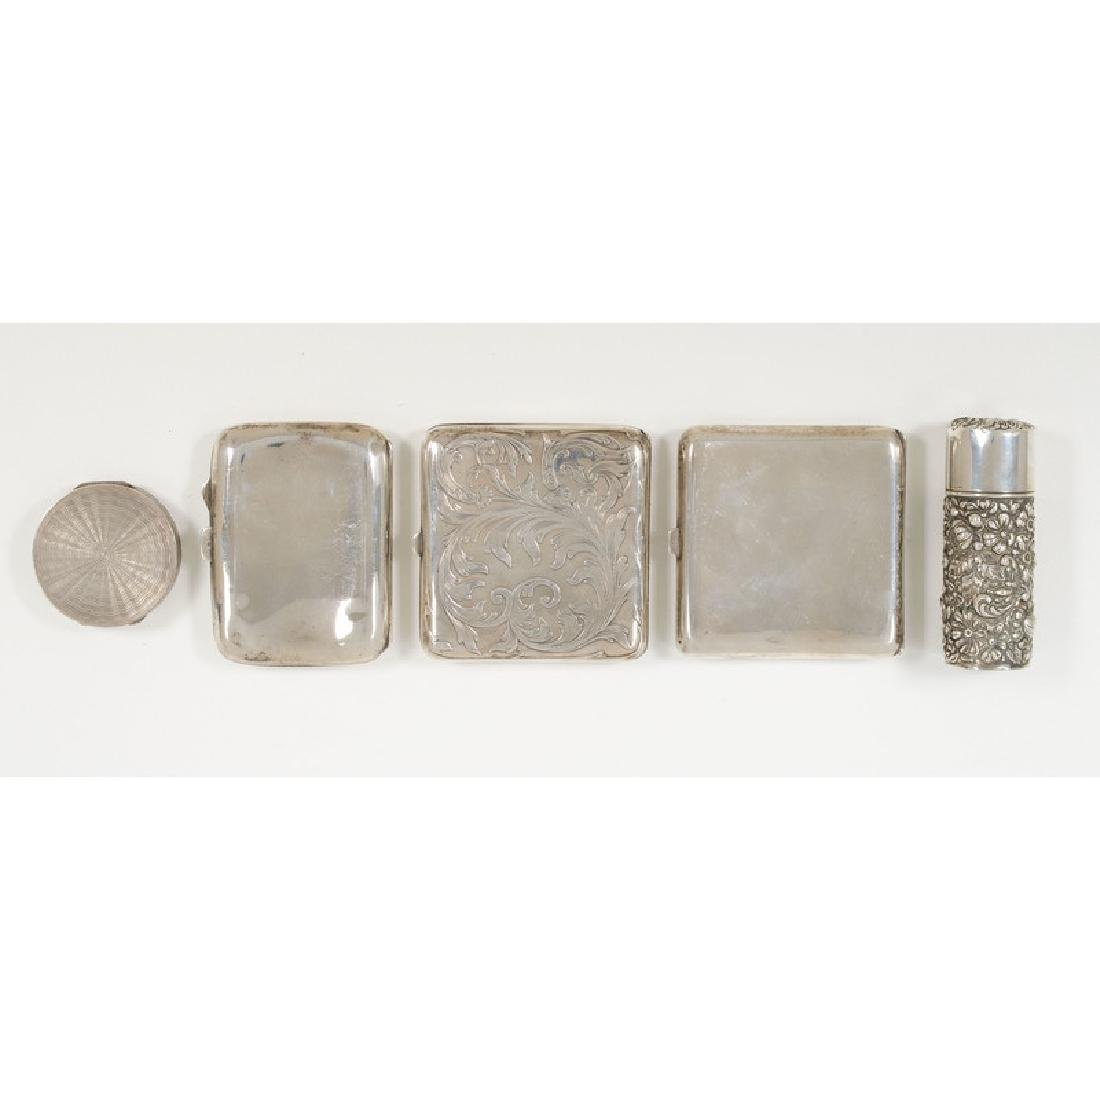 Sterling Cigarette Cases, Perfume Bottle and Compact - 3